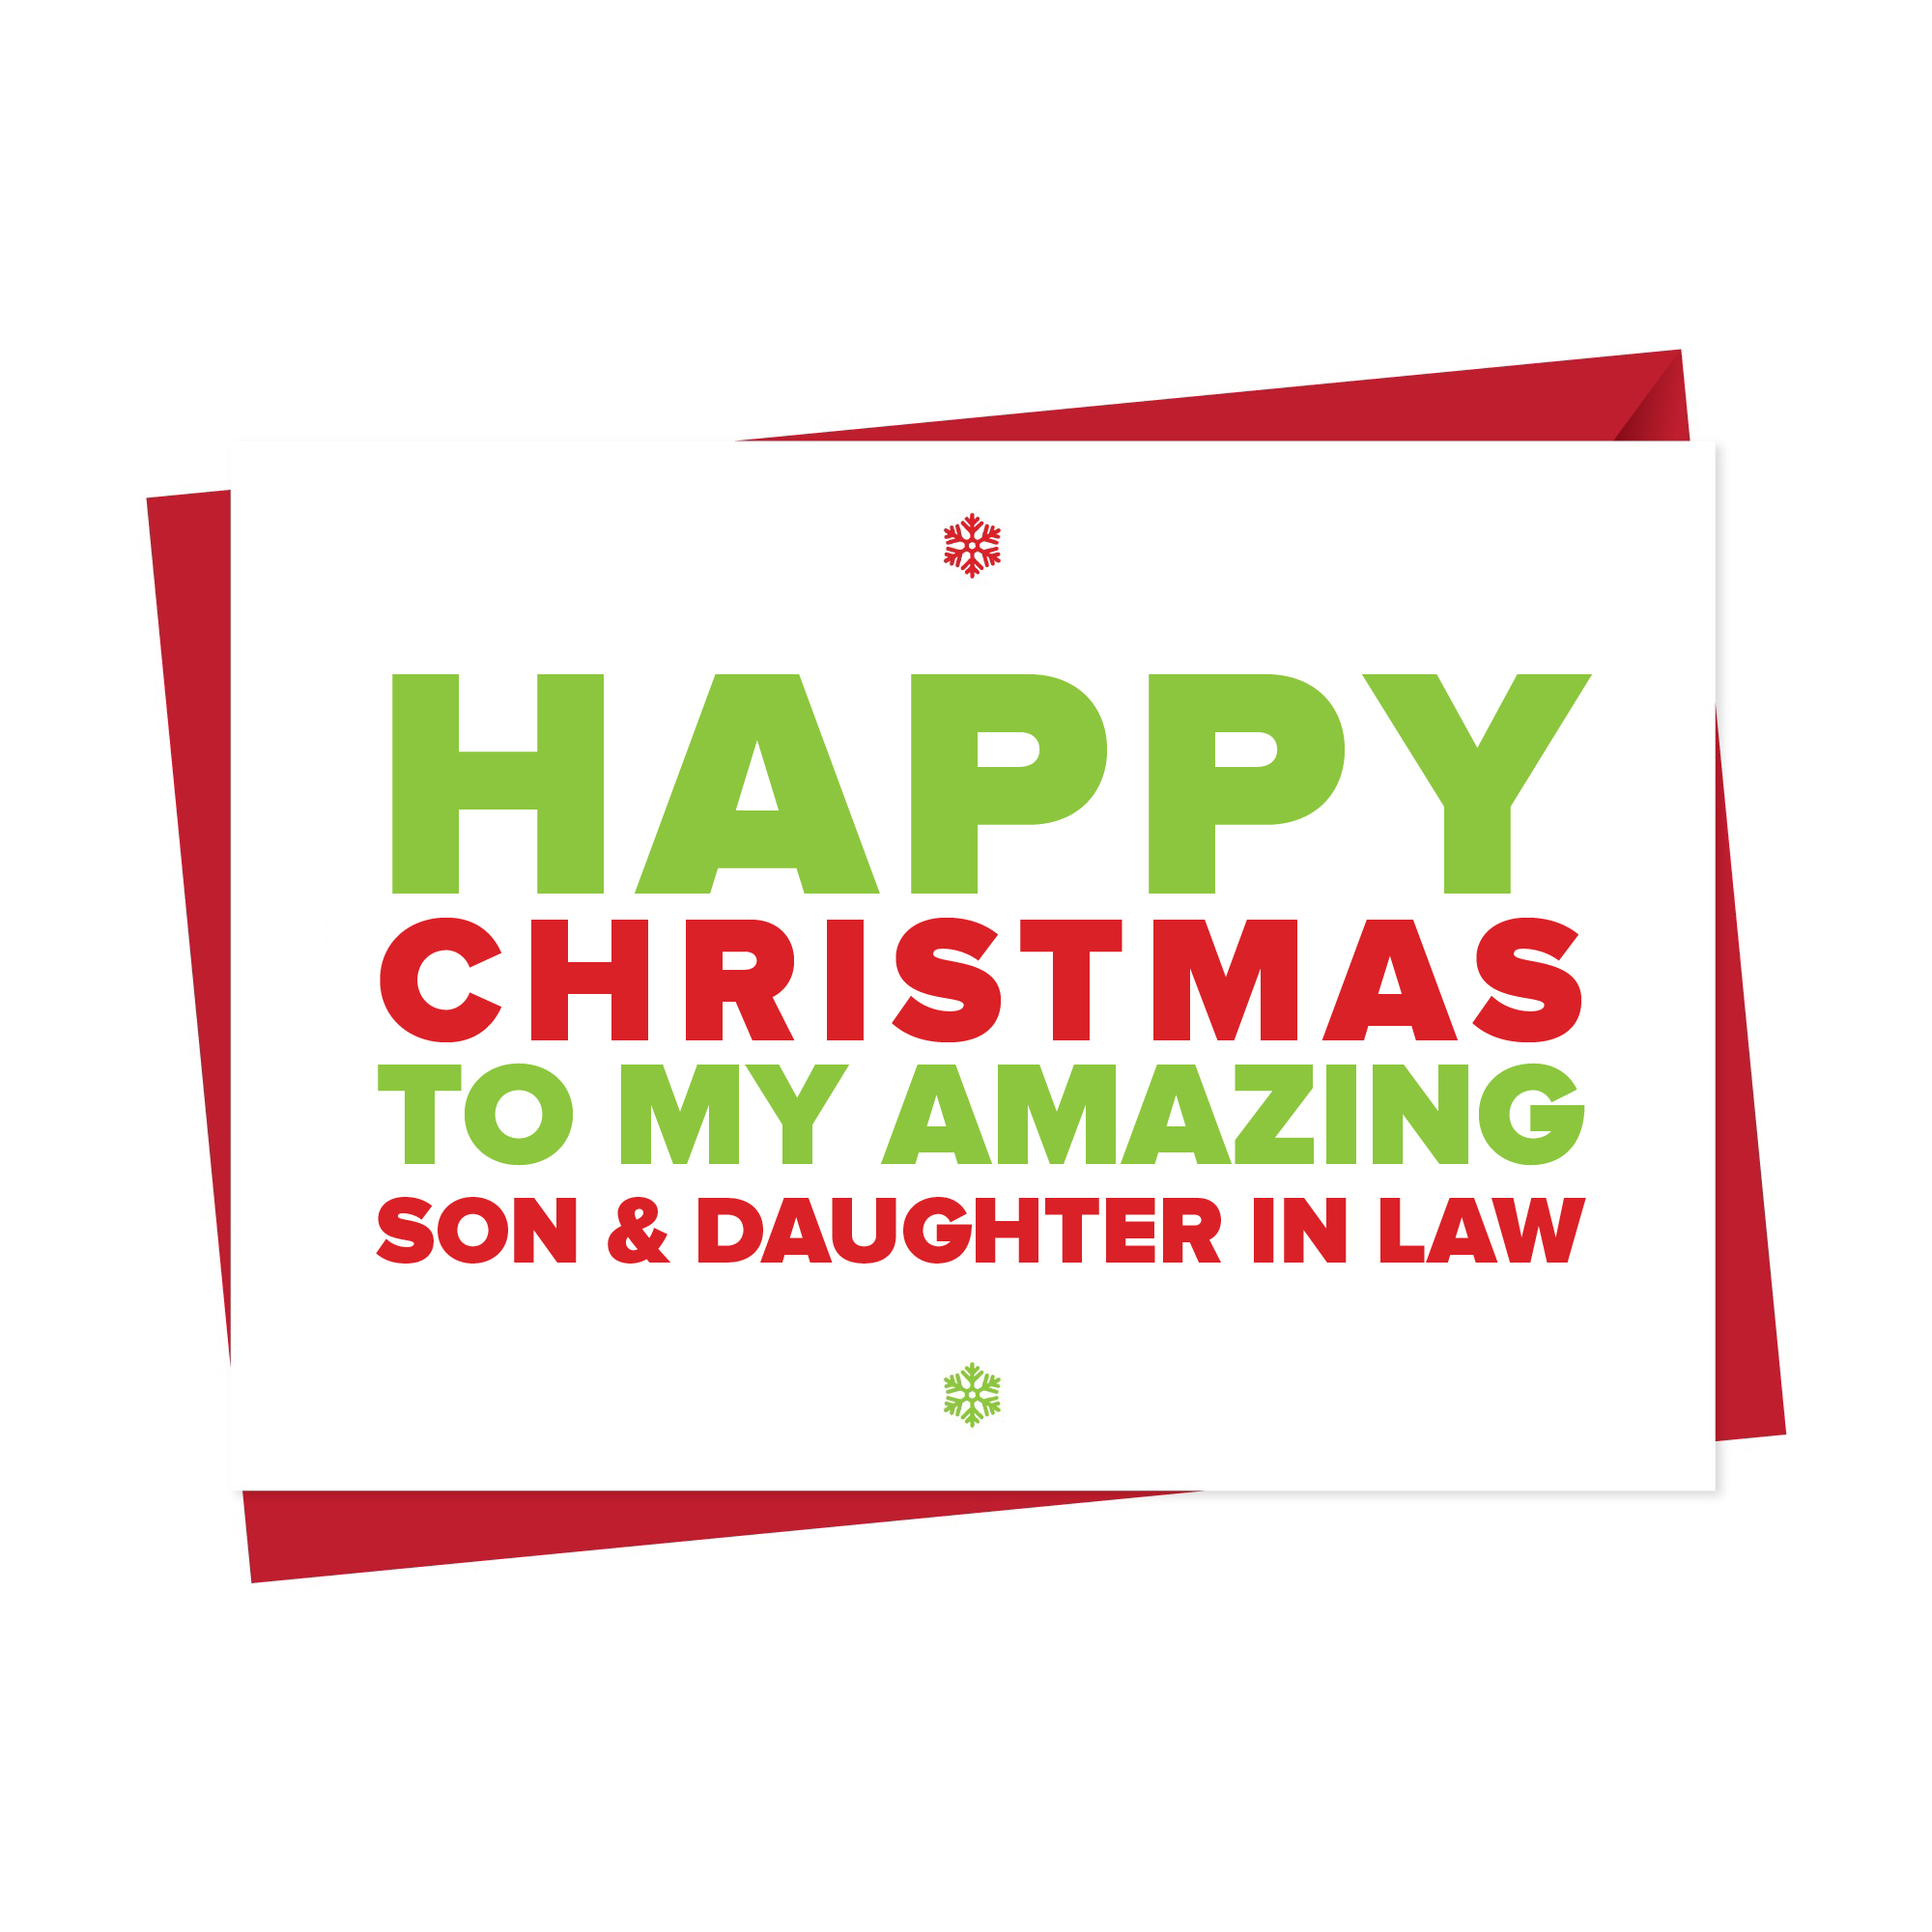 Christmas Card for An Amazing Son & Daughter in Law